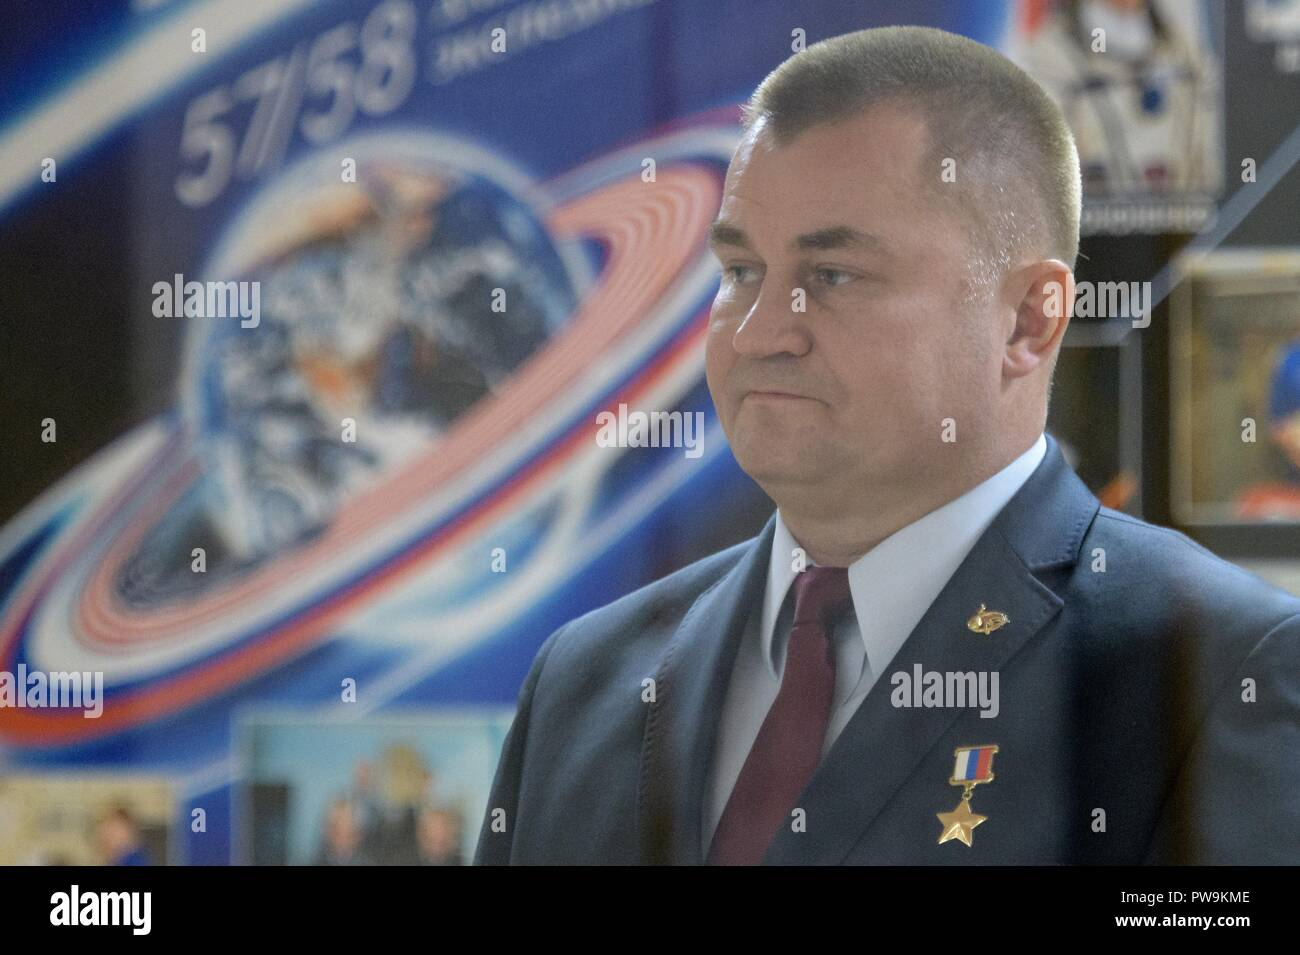 Expedition 57 Flight Engineer Alexey Ovchinin of Roscosmos stands during the State Commission meeting to approve the Soyuz launch of Expedition 57 to the International Space Stationat the Cosmonauts Hotel October 10, 2018 in Baikonur, Kazakhstan. Shortly after lift off on October 11th the rocket malfunctioned en route to the International Space Station and aborted forcing an emergency landing in Kazakhstan. The crew members have been picked up by search and rescue and are reportedly in good condition. - Stock Image